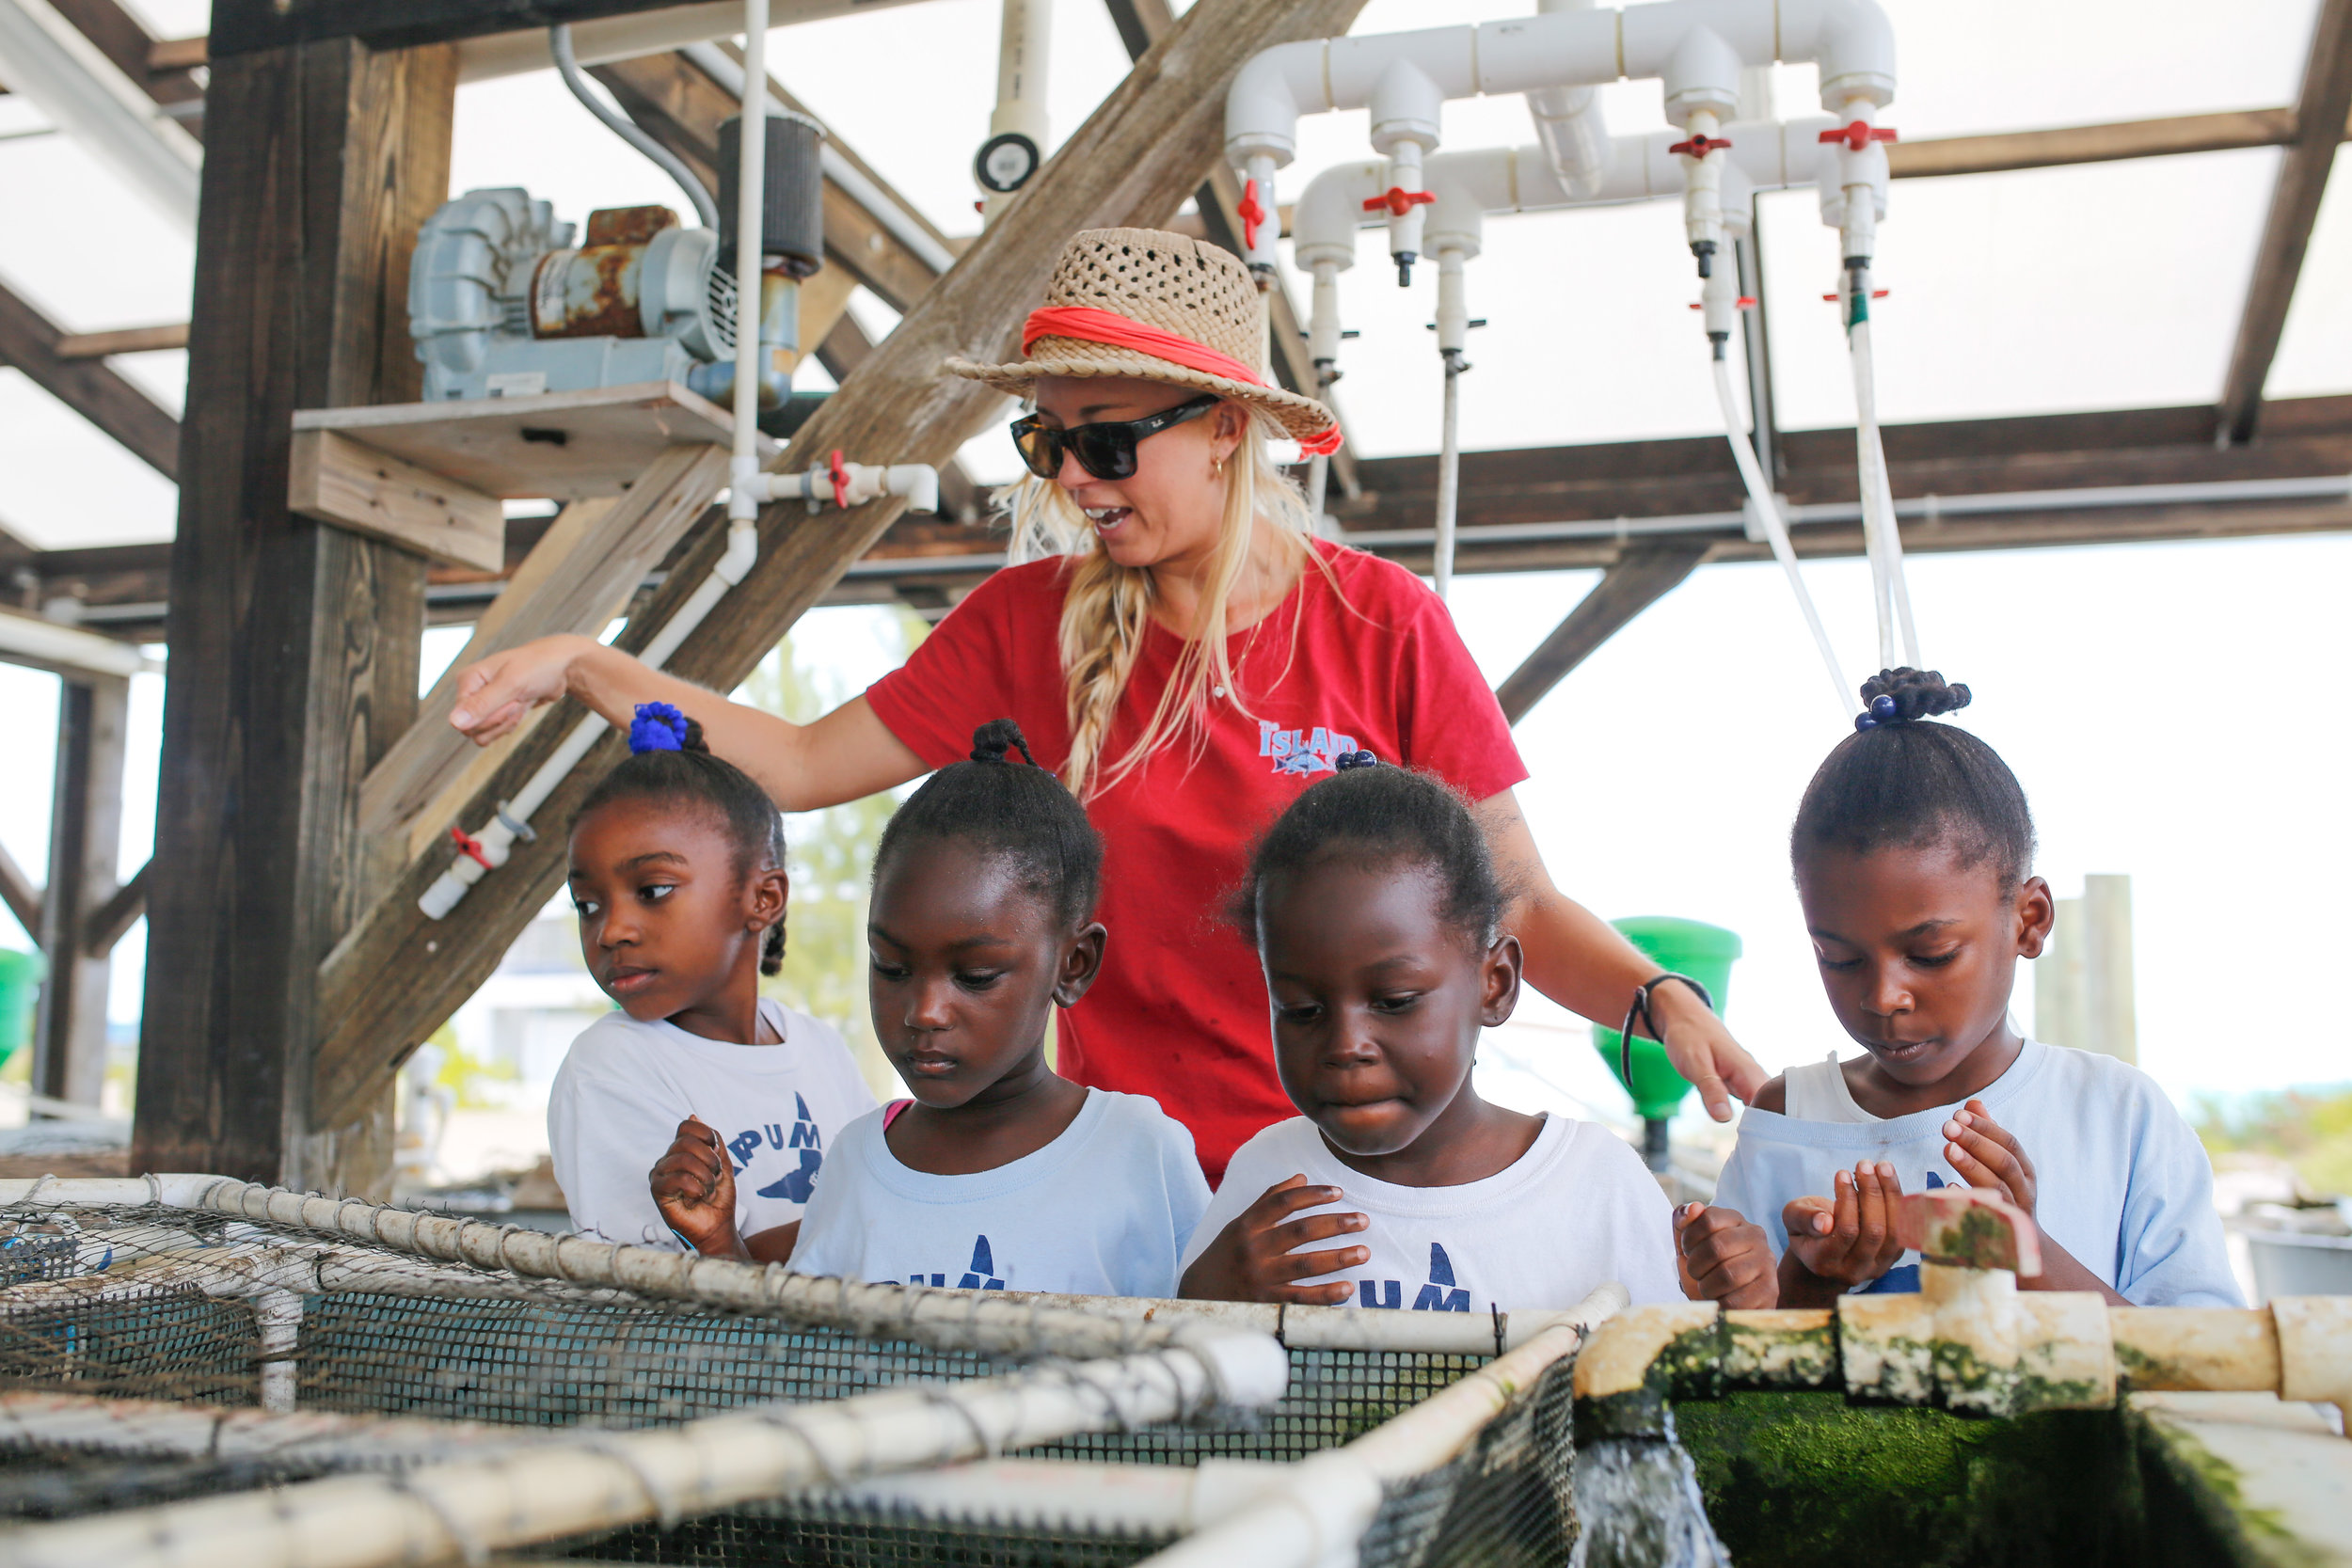 Educational Programs Lead Teacher Tiffany Gray demonstrates how the tilapia aquaculture system works